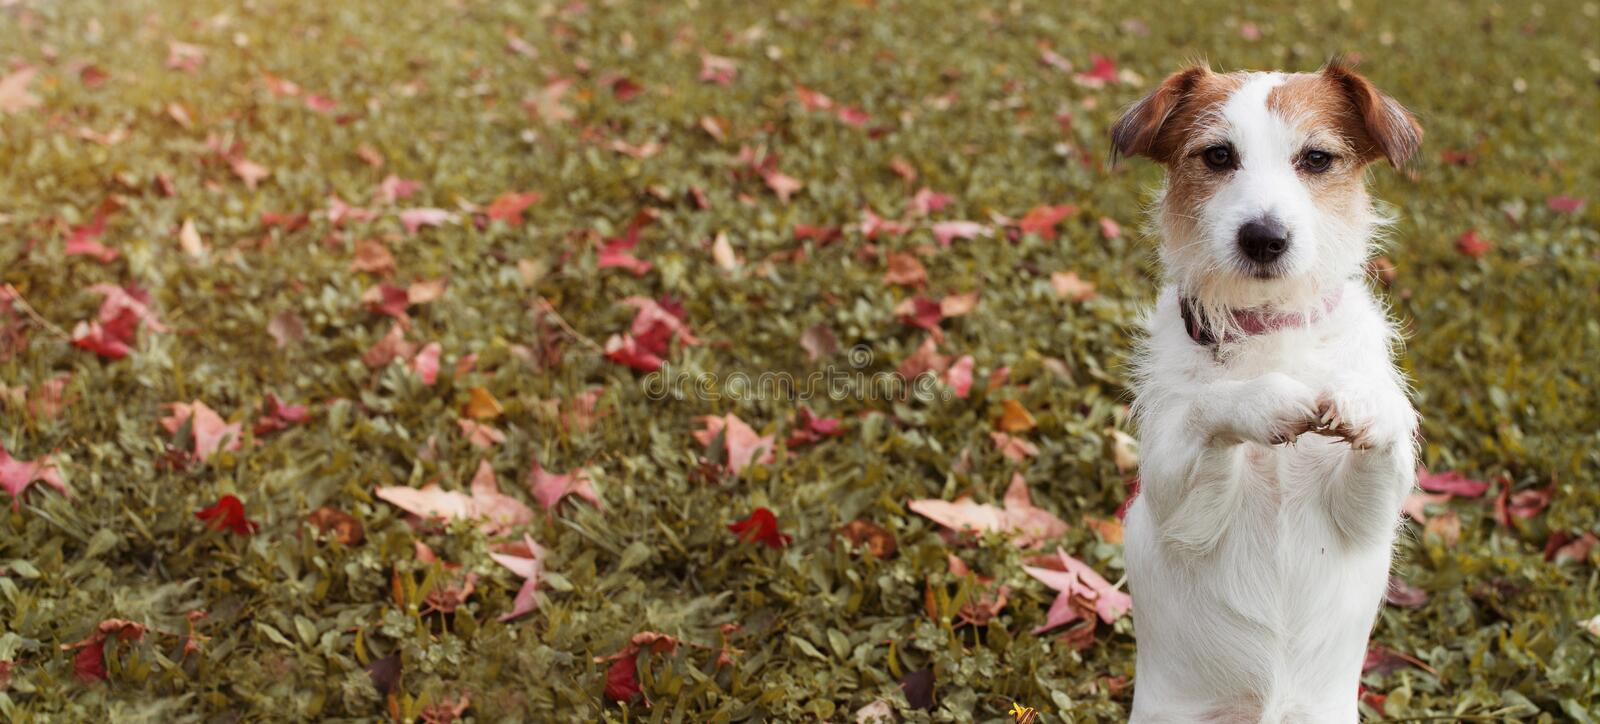 WEBSIDE BANNER AUTUMN DOG. JACK RUSSELL PUPPY STANDING ON TWO HIND LEGS AND PRAYING WITH ITS FRONT PAWS ON FALL LEAVES GRASS royalty free stock photography